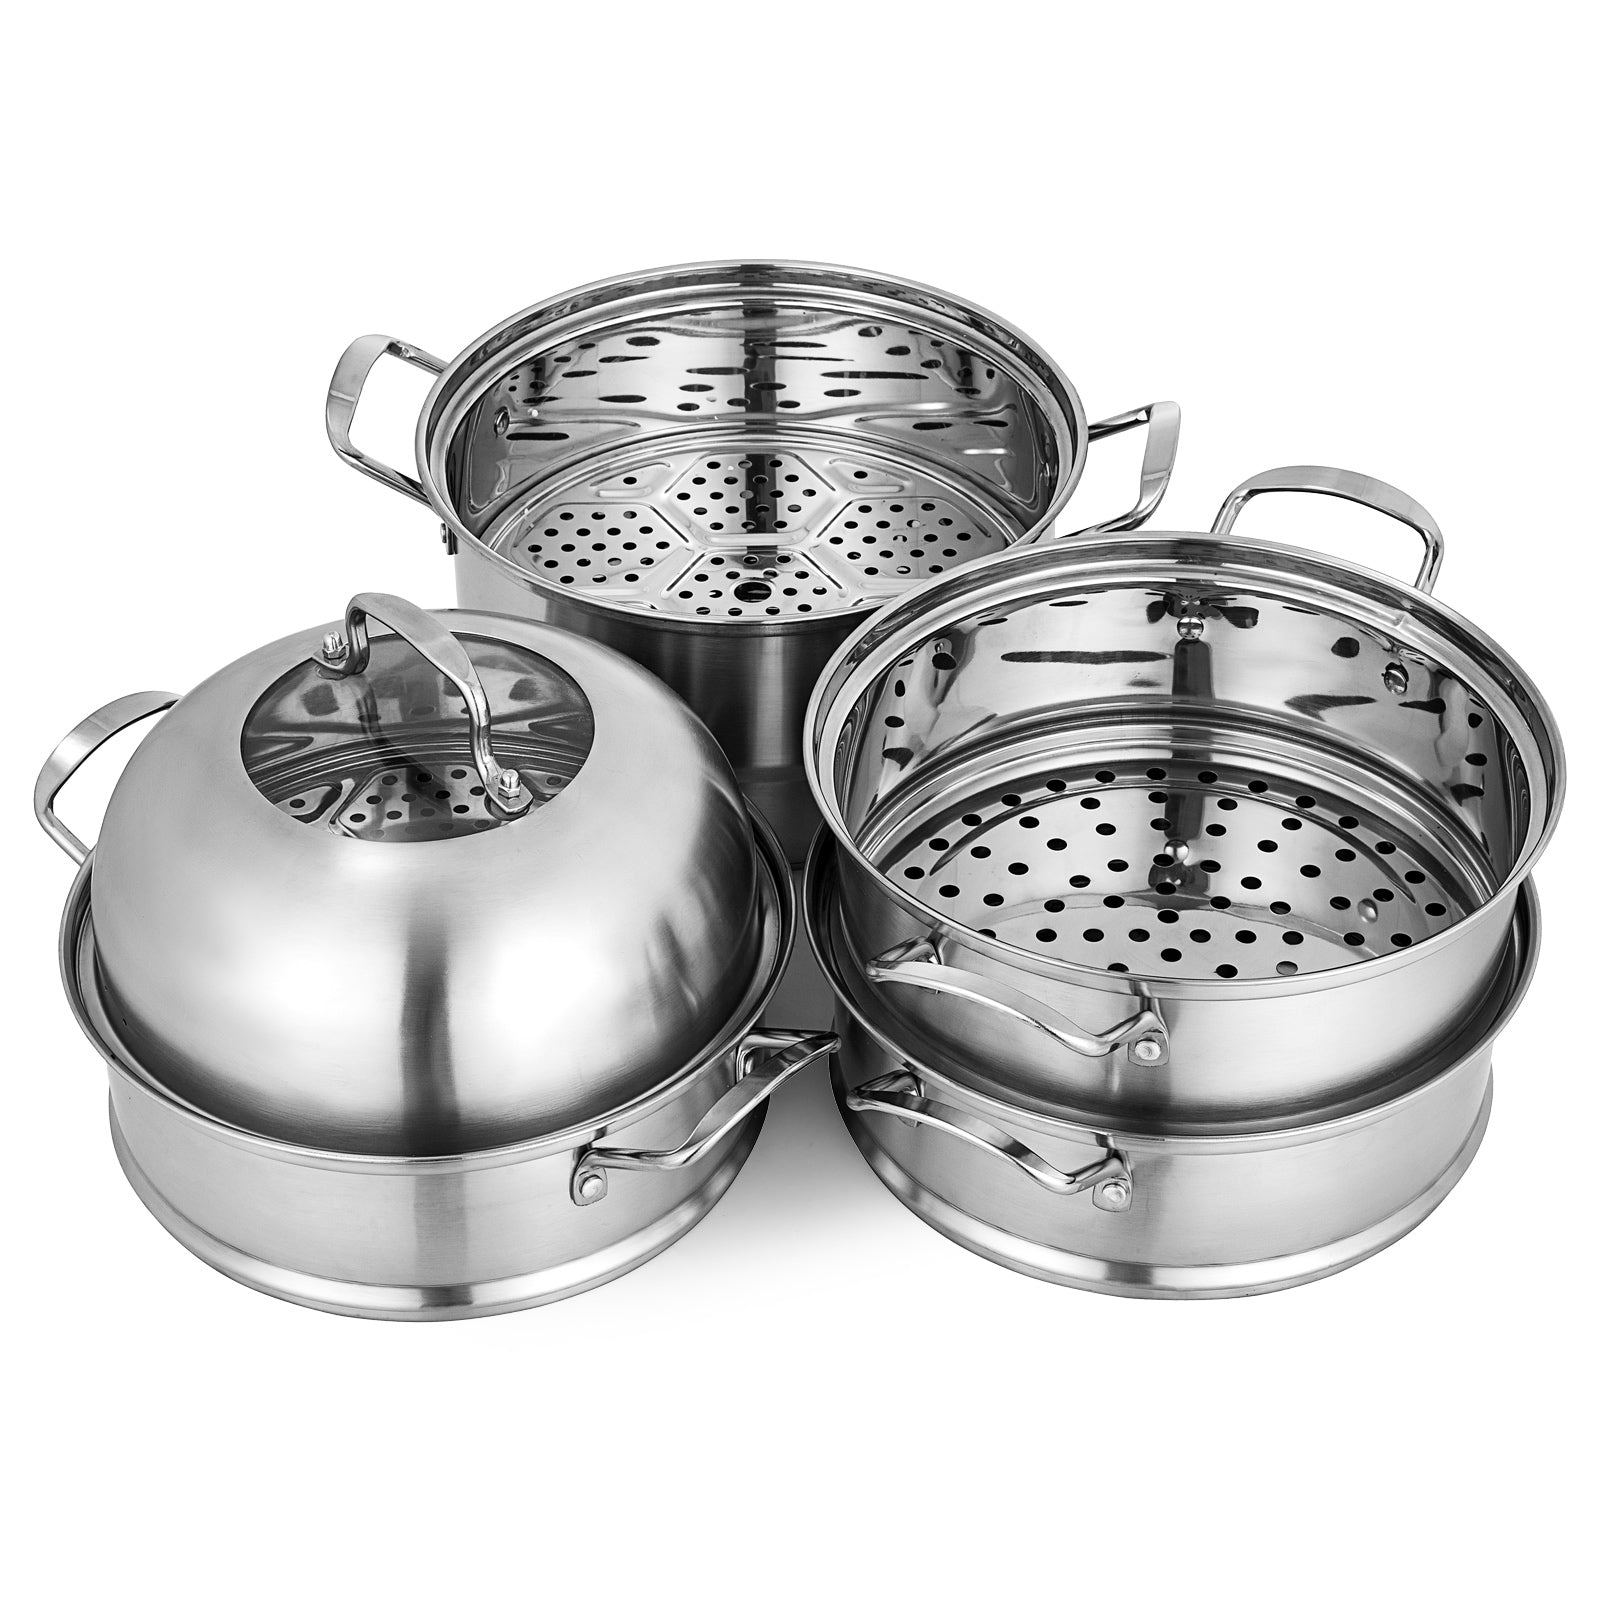 Stainless Steel Food Steamer 30cm Cooking Tool 12 Heating Steamed Dishes Soup